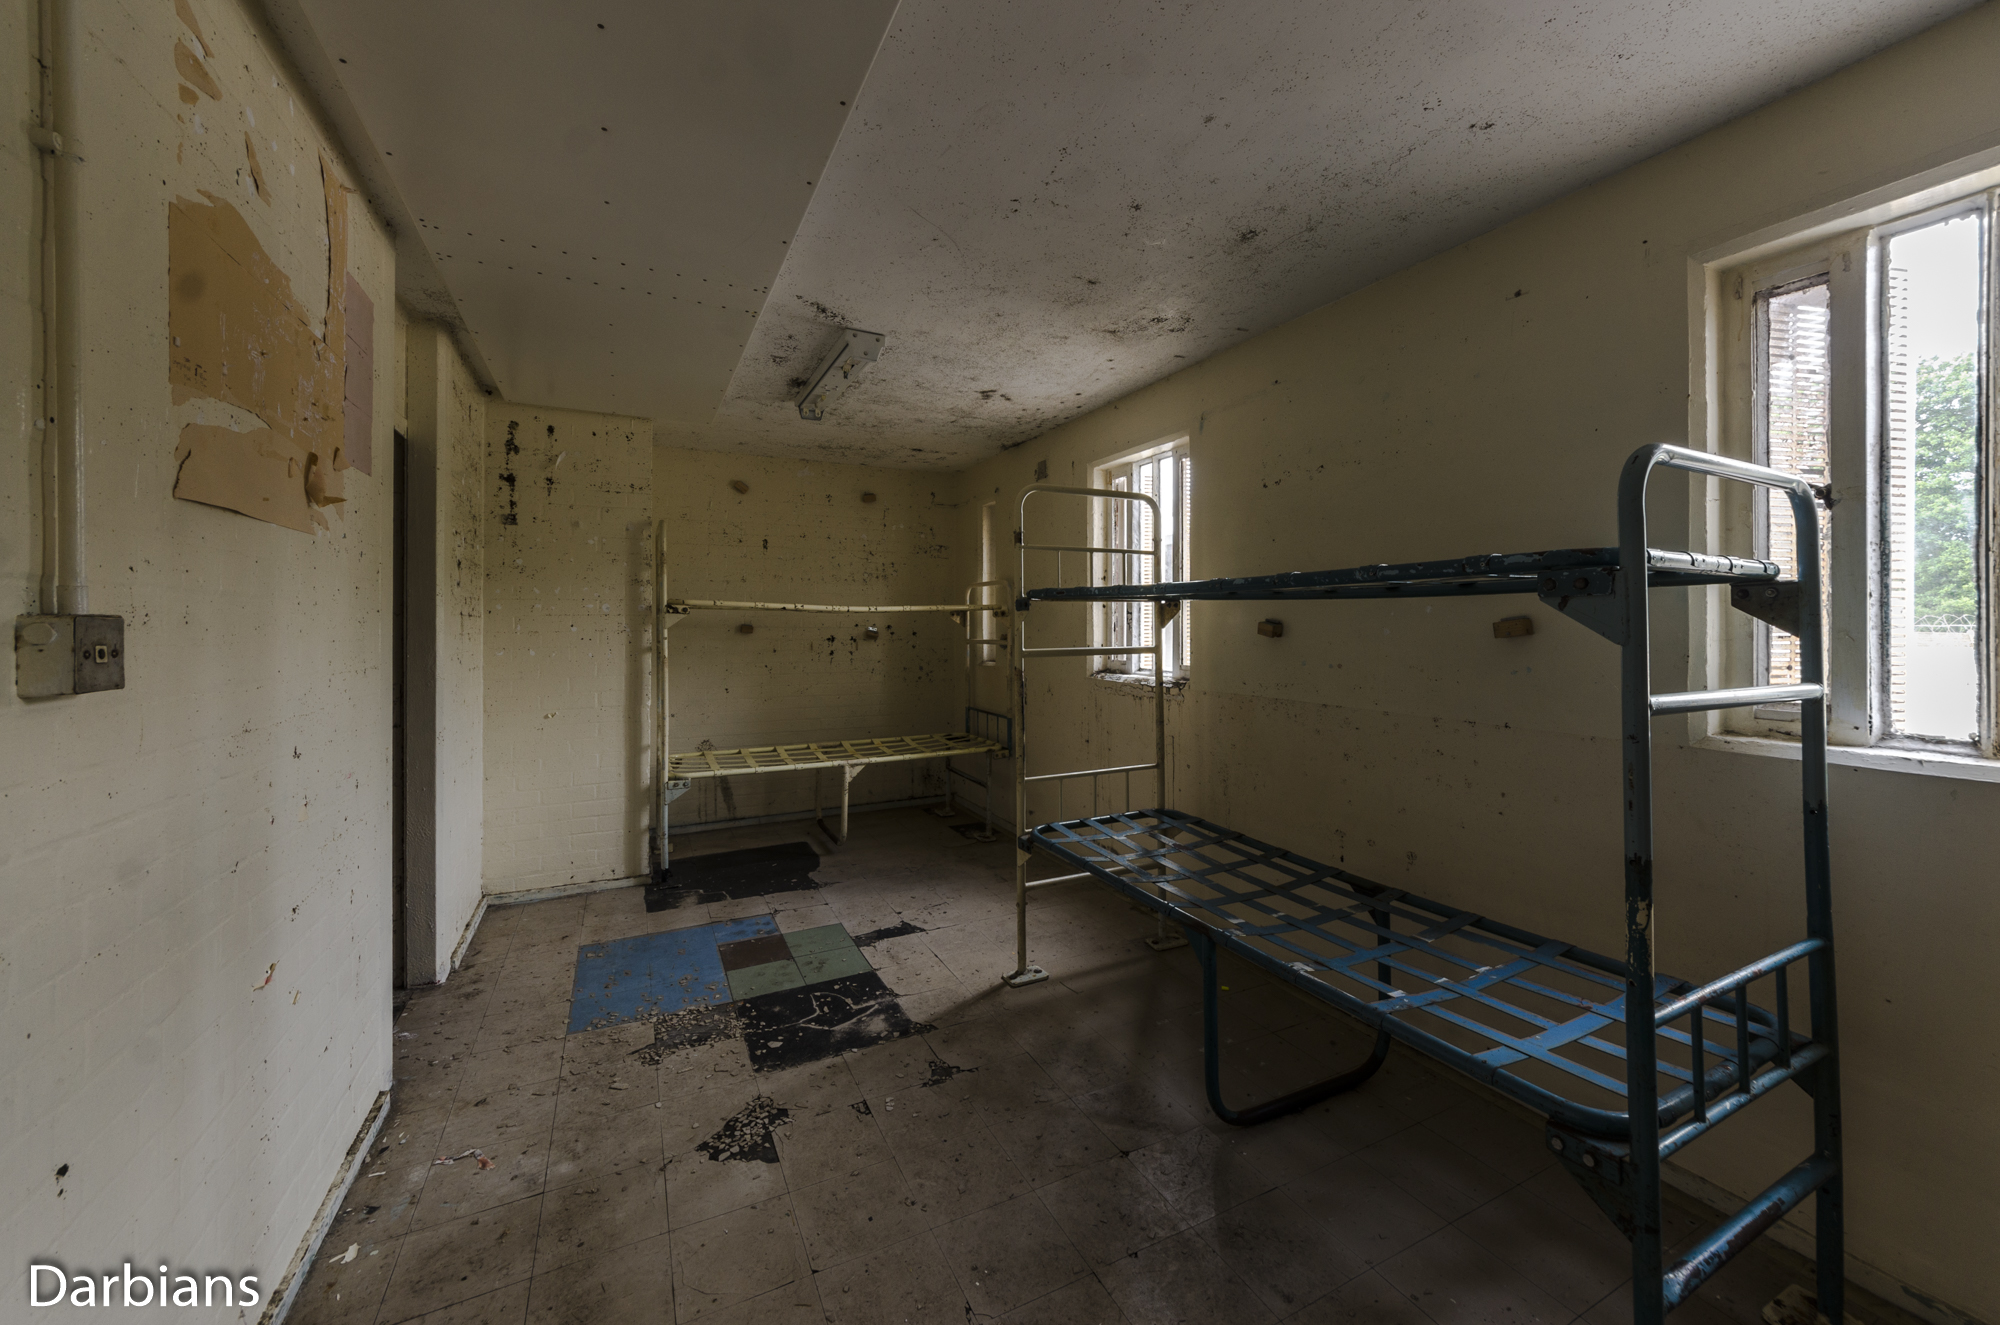 HMP Blundeston Prison. Cells with decay, beds were all metal.